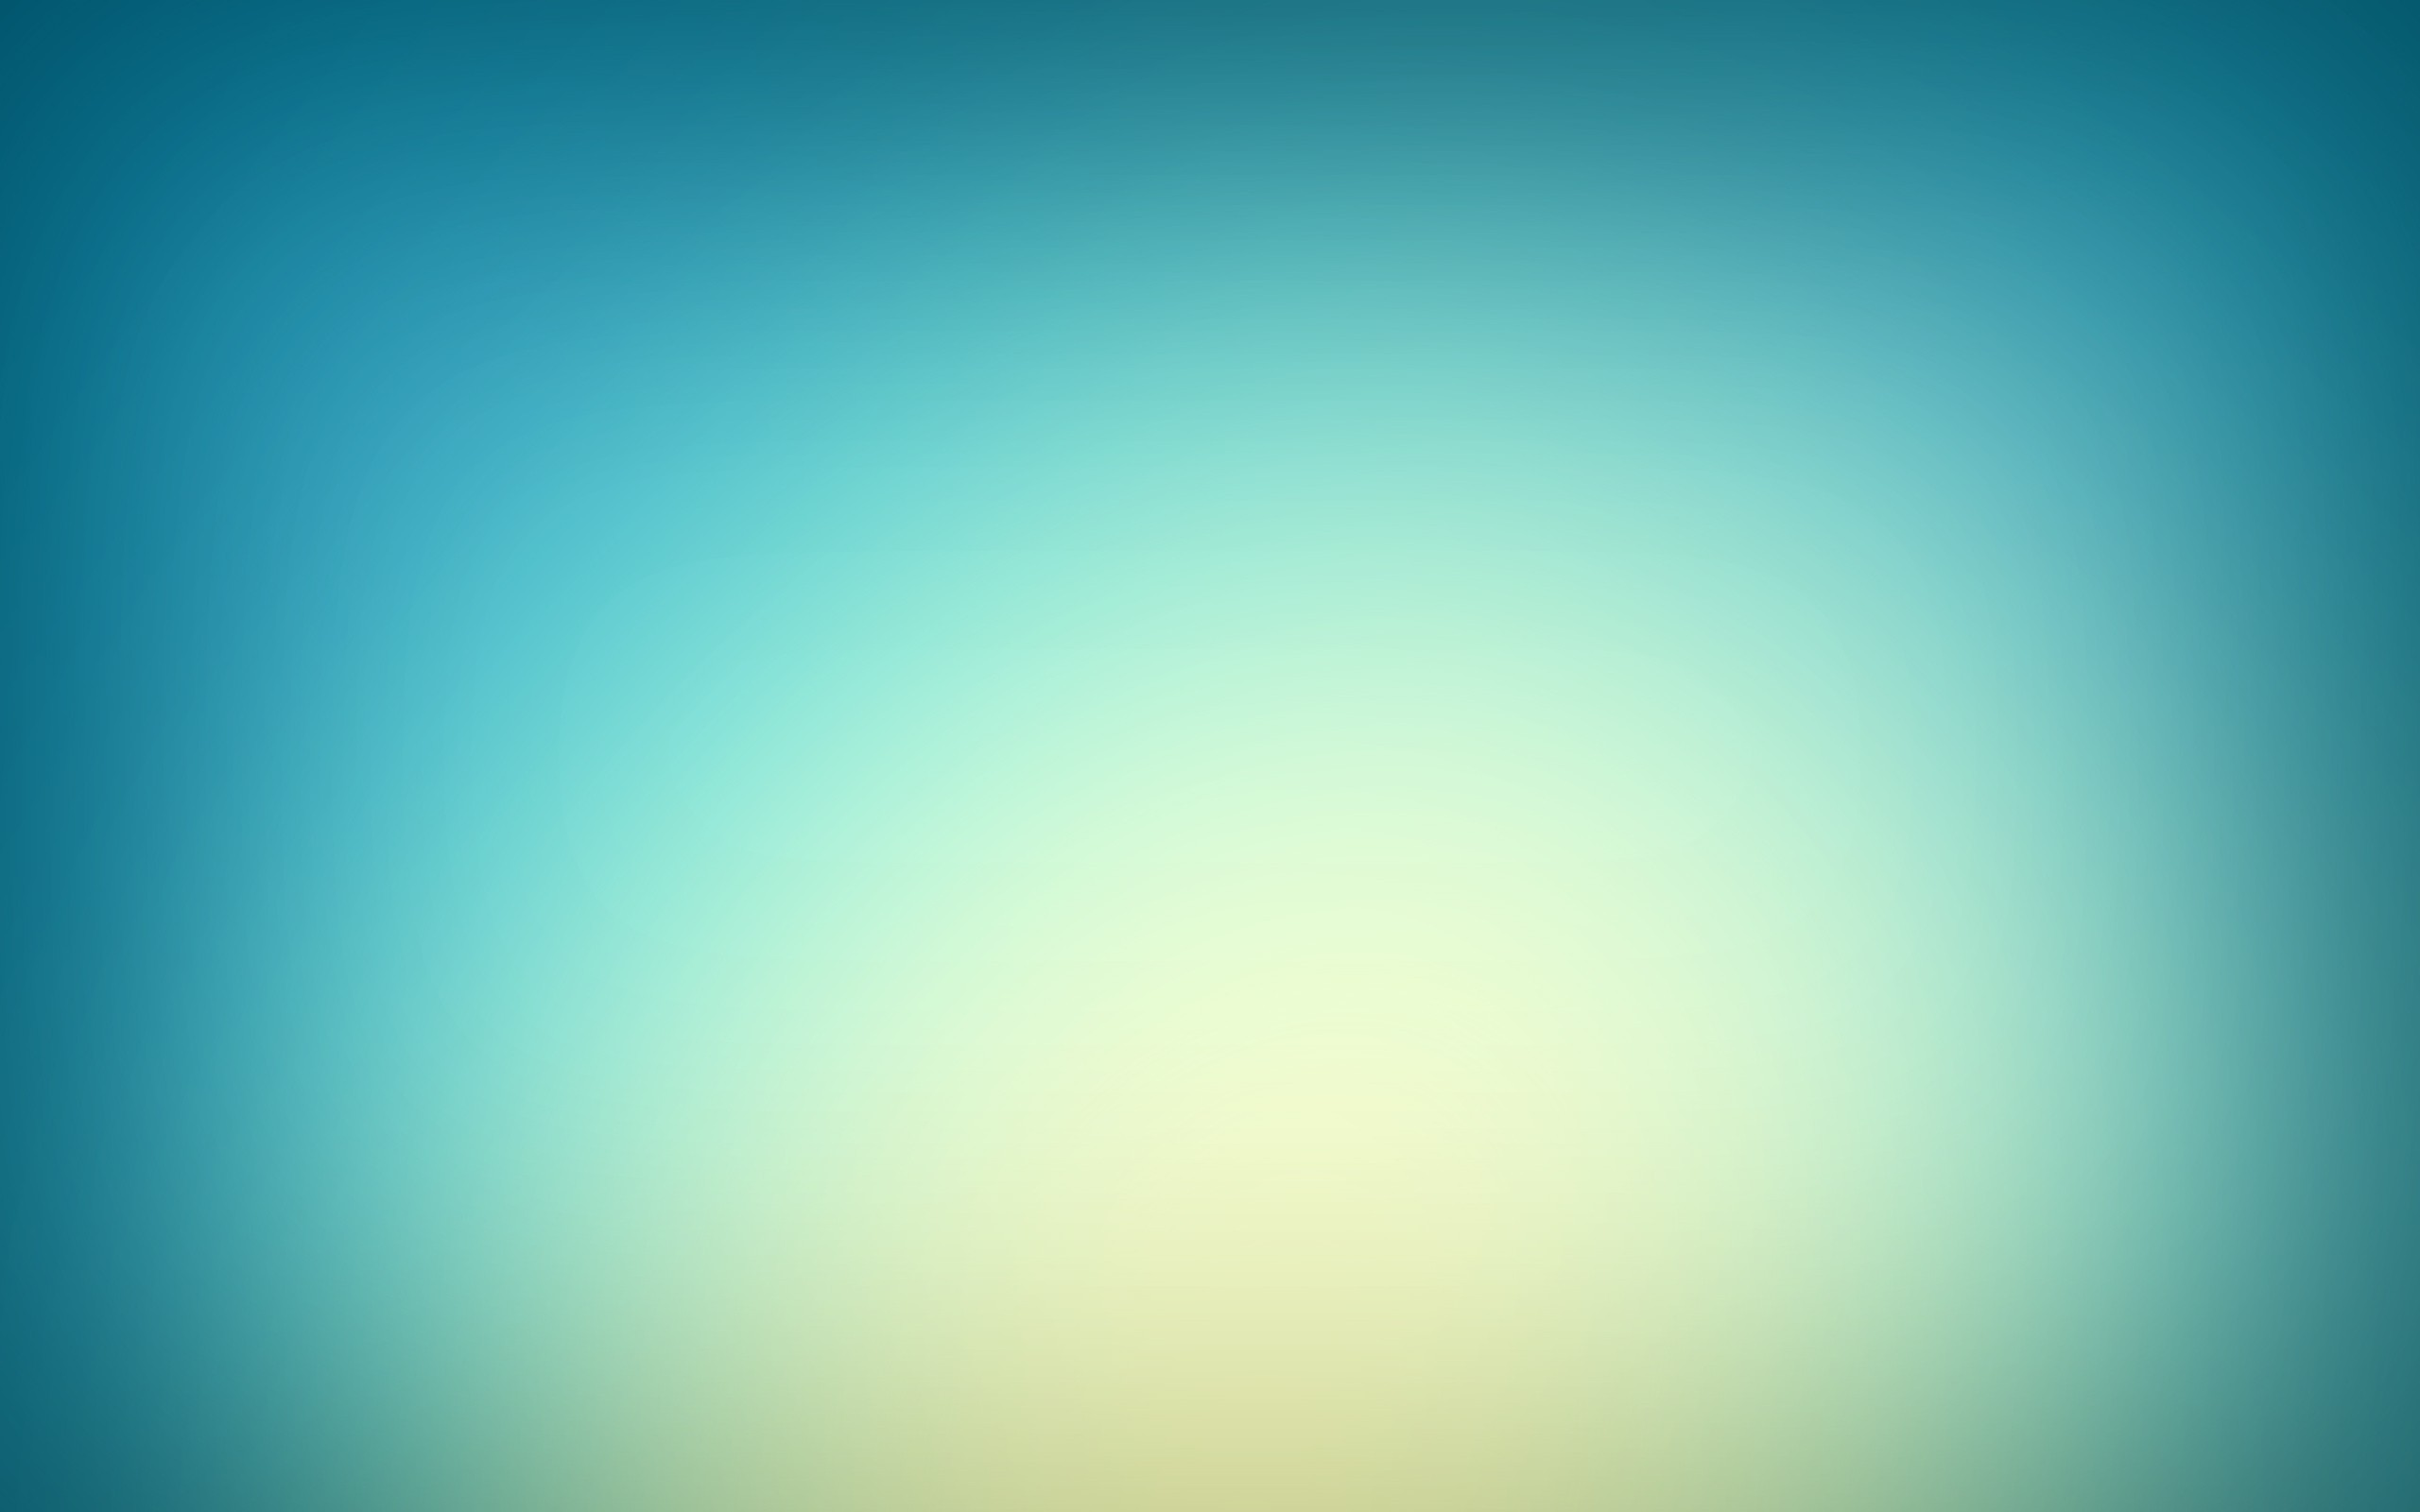 white and blue wallpaper 2560x1600 2618 wallpaperup